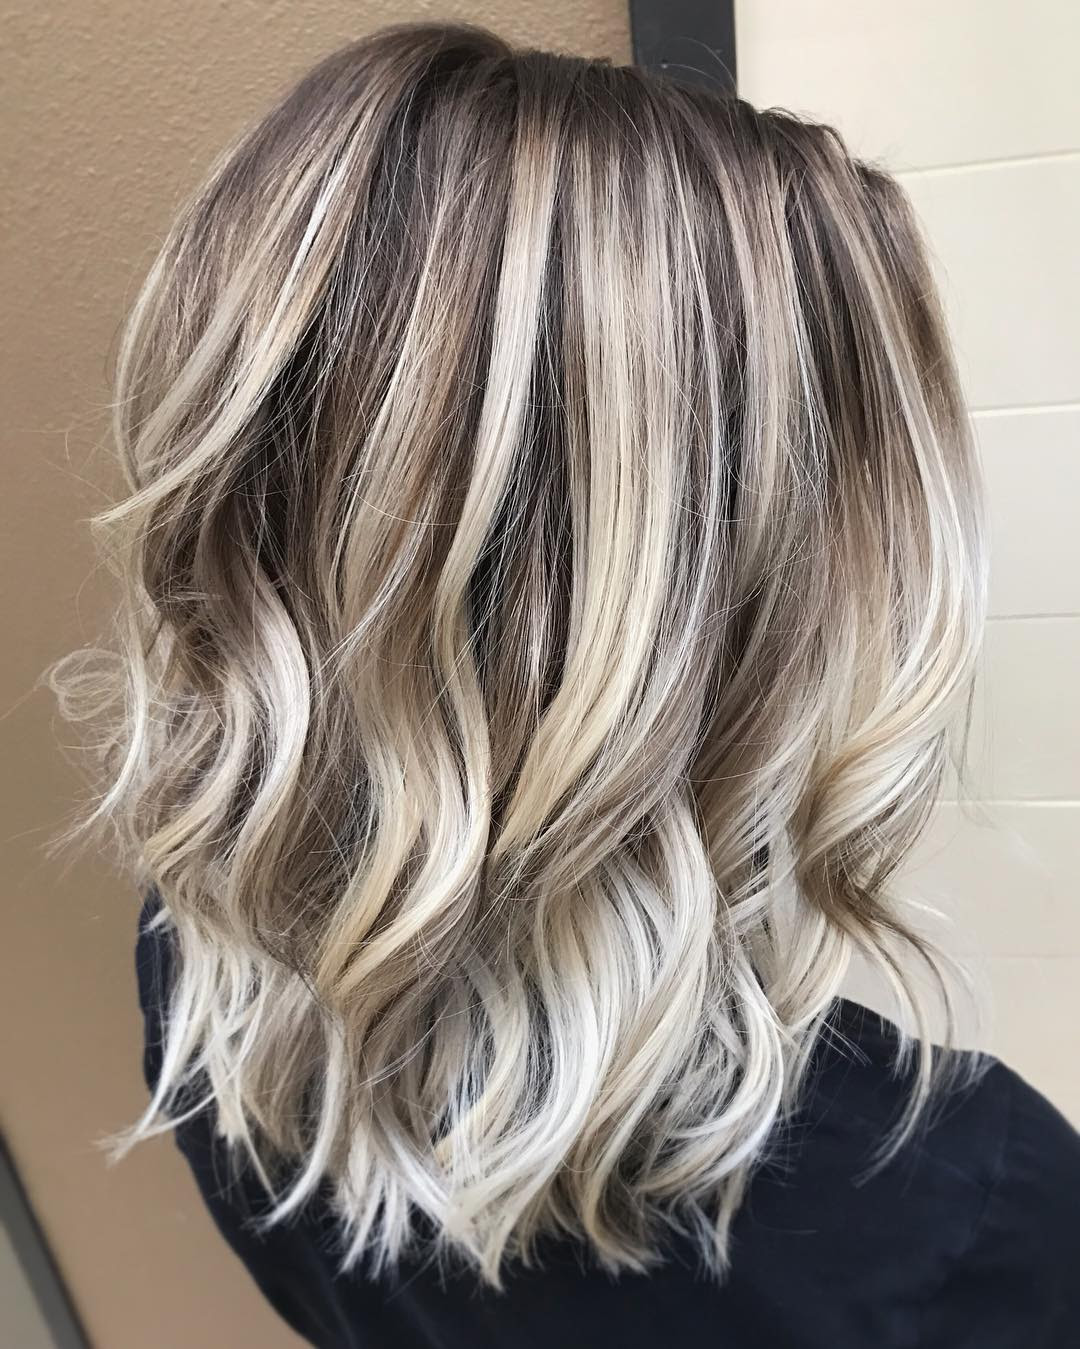 10 Ash Blonde Hairstyles For All Skin Tones 2018 Best Hair Color Trends